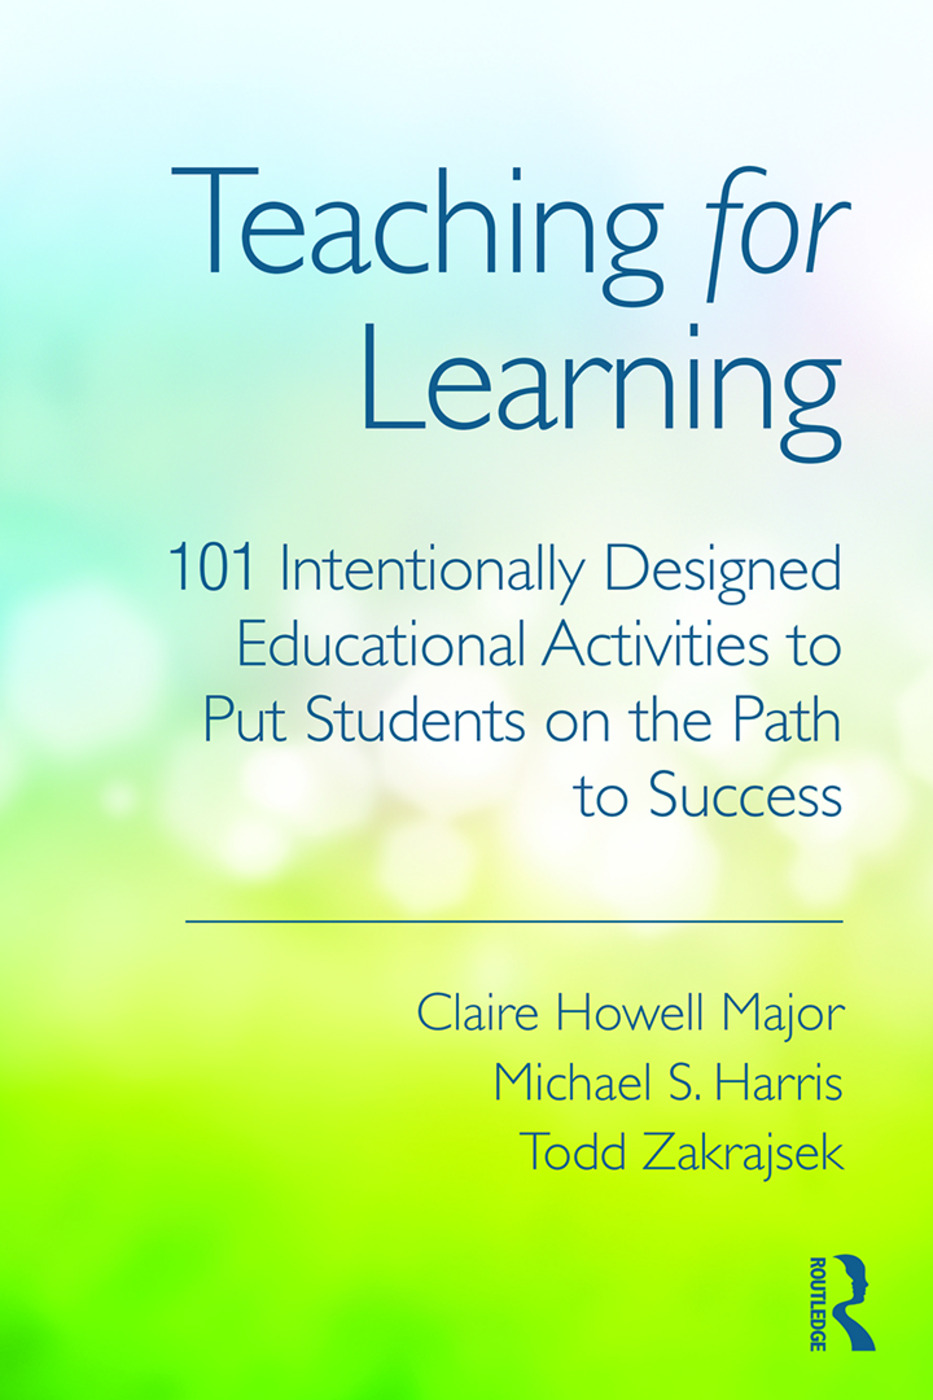 Teaching for Learning: 101 Intentionally Designed Educational Activities to Put Students on the Path to Success (Paperback) book cover